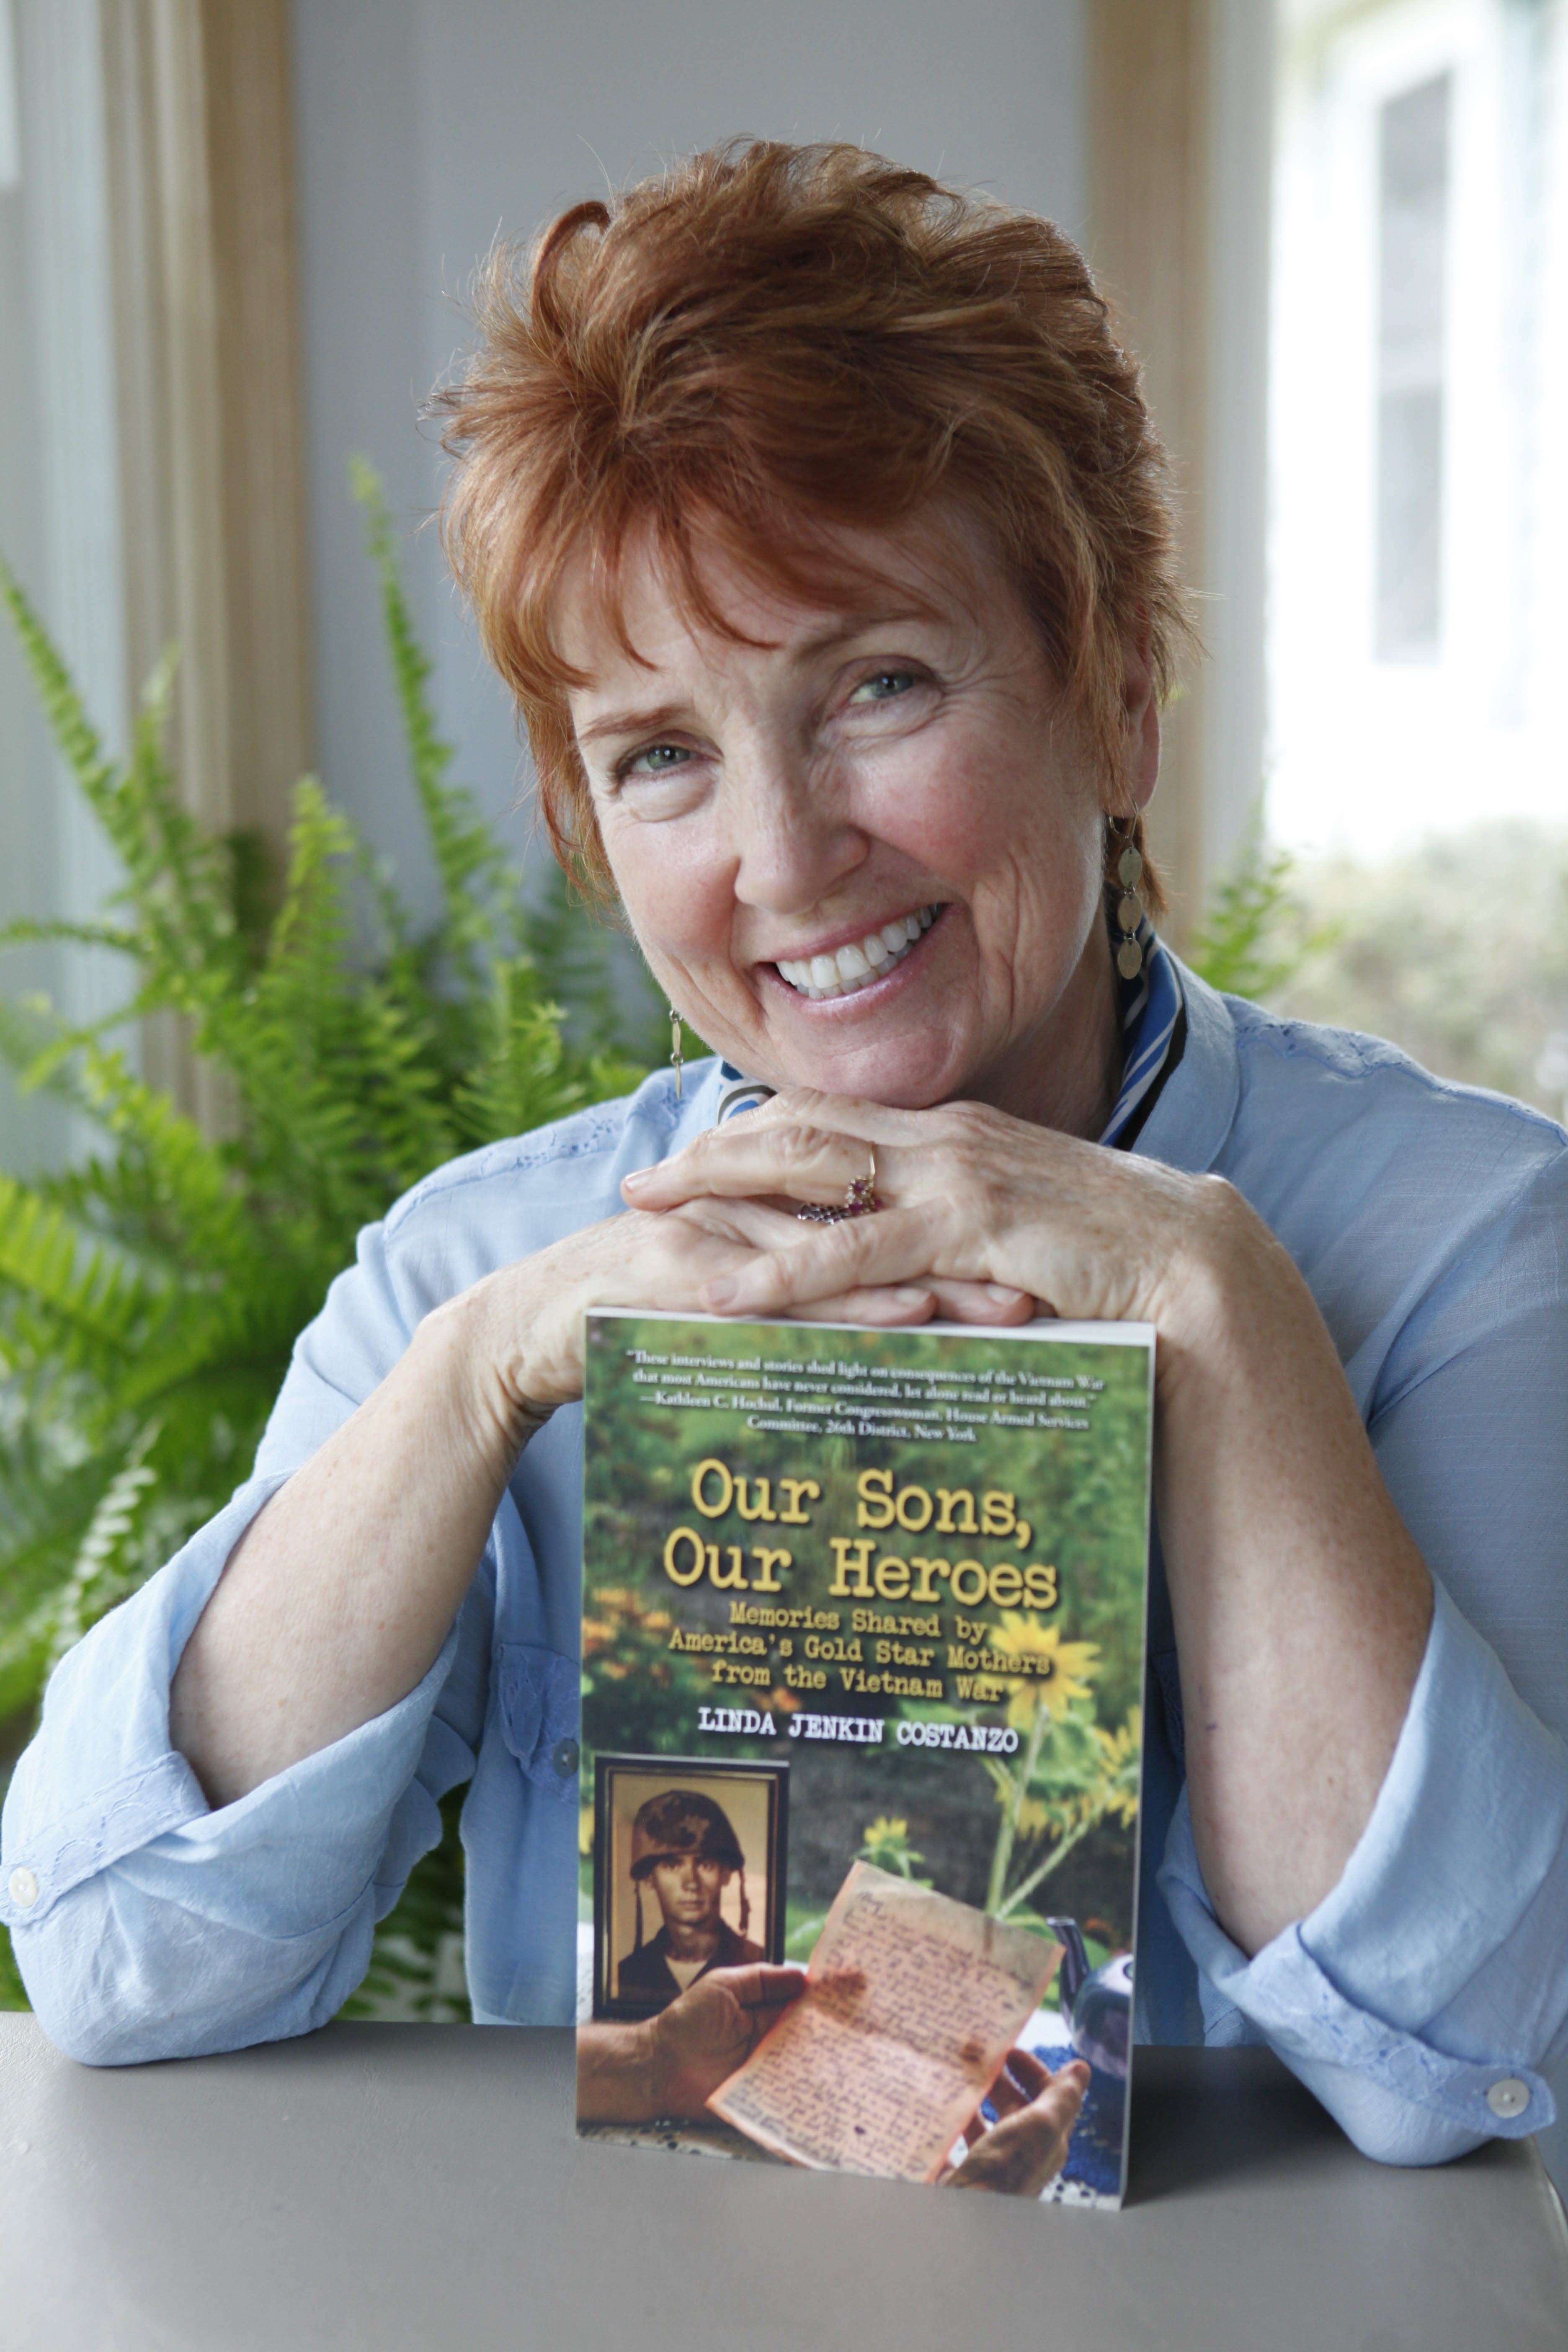 """Linda Jenkin Constanzo wrote the book """"Our Heroes, Memories Shared by America's Gold Star Mothers from the Vietnam War.""""  She was photographed at her home in Clarence, Monday, April 28, 2014.  (Sharon Cantillon/Buffalo News)"""